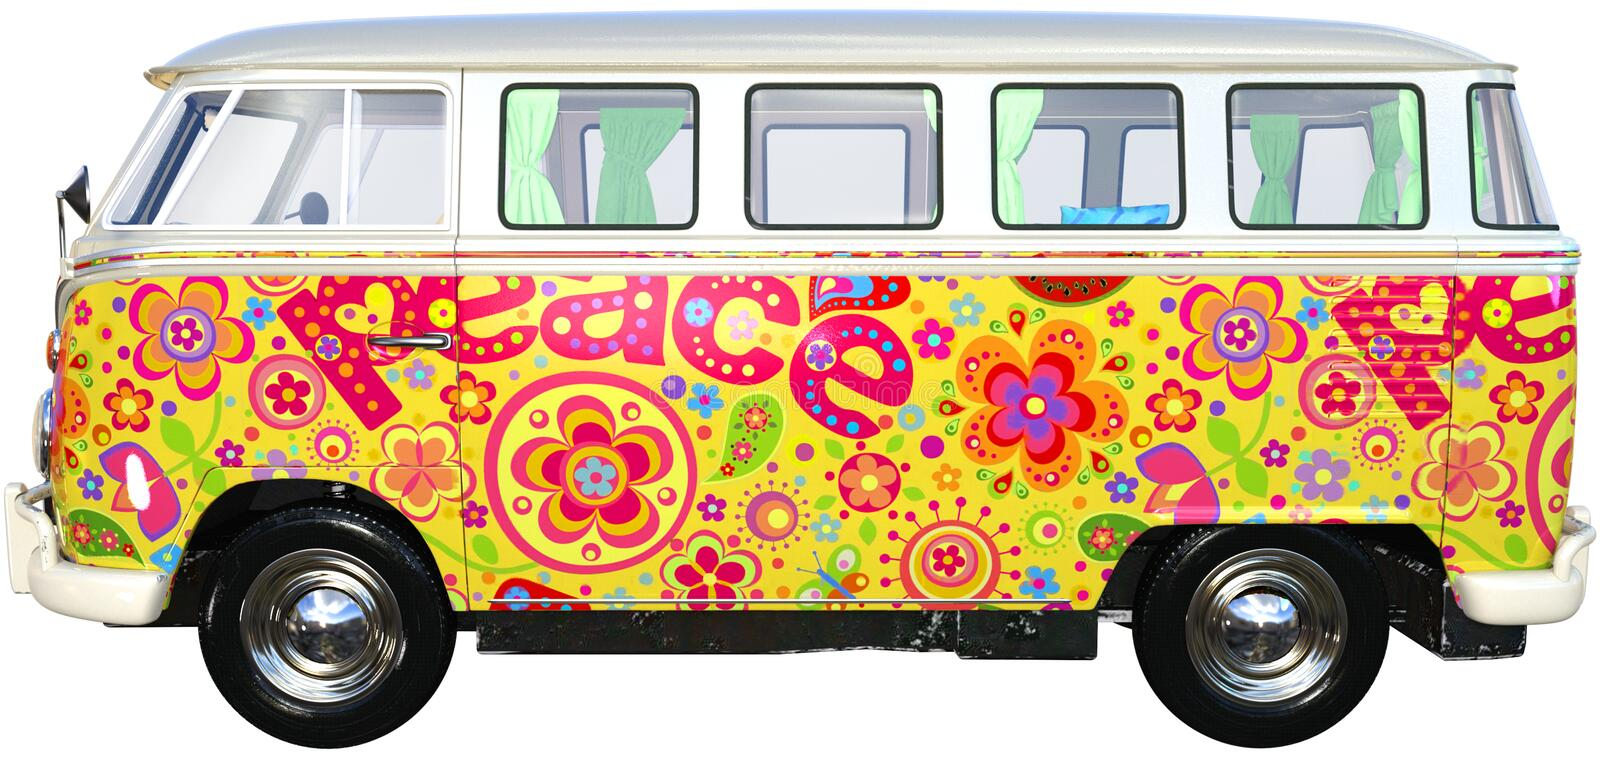 VW Hippie Bus Van Isolated, Volkswagen στοκ εικόνες